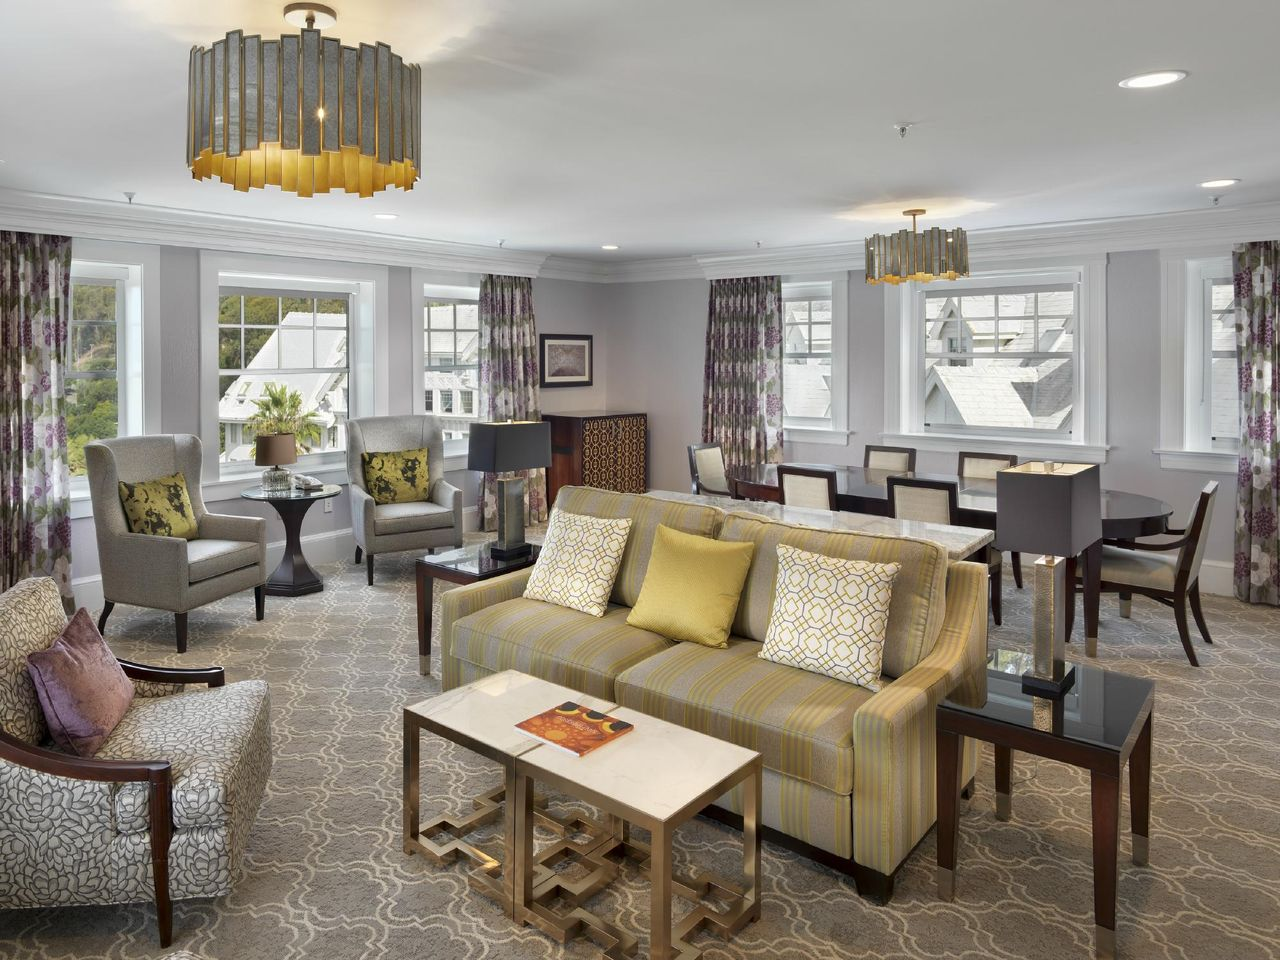 The Claremont Hotel Club & Spa